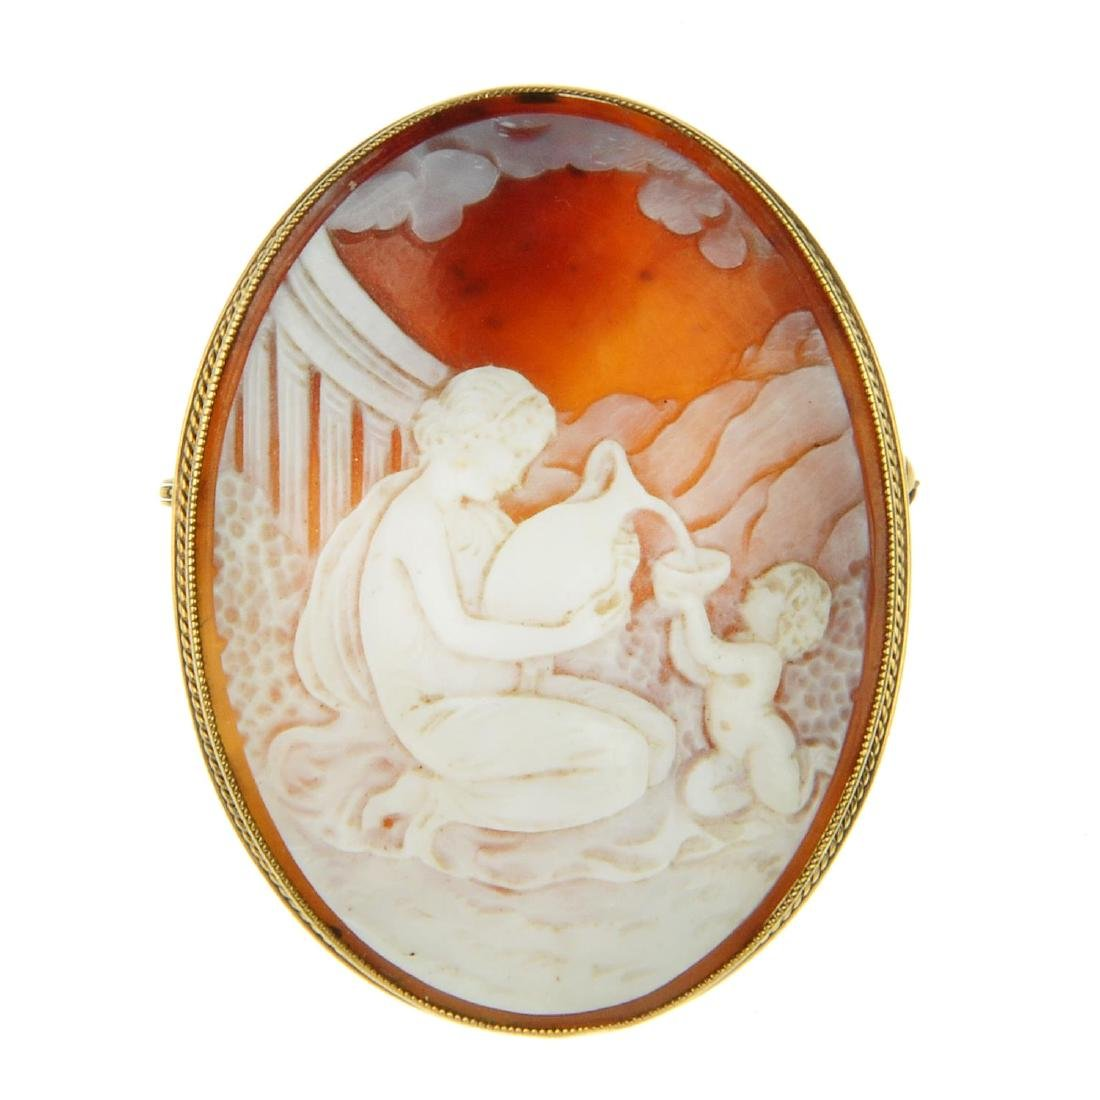 A 9ct gold cameo brooch. Of oval outline, with a